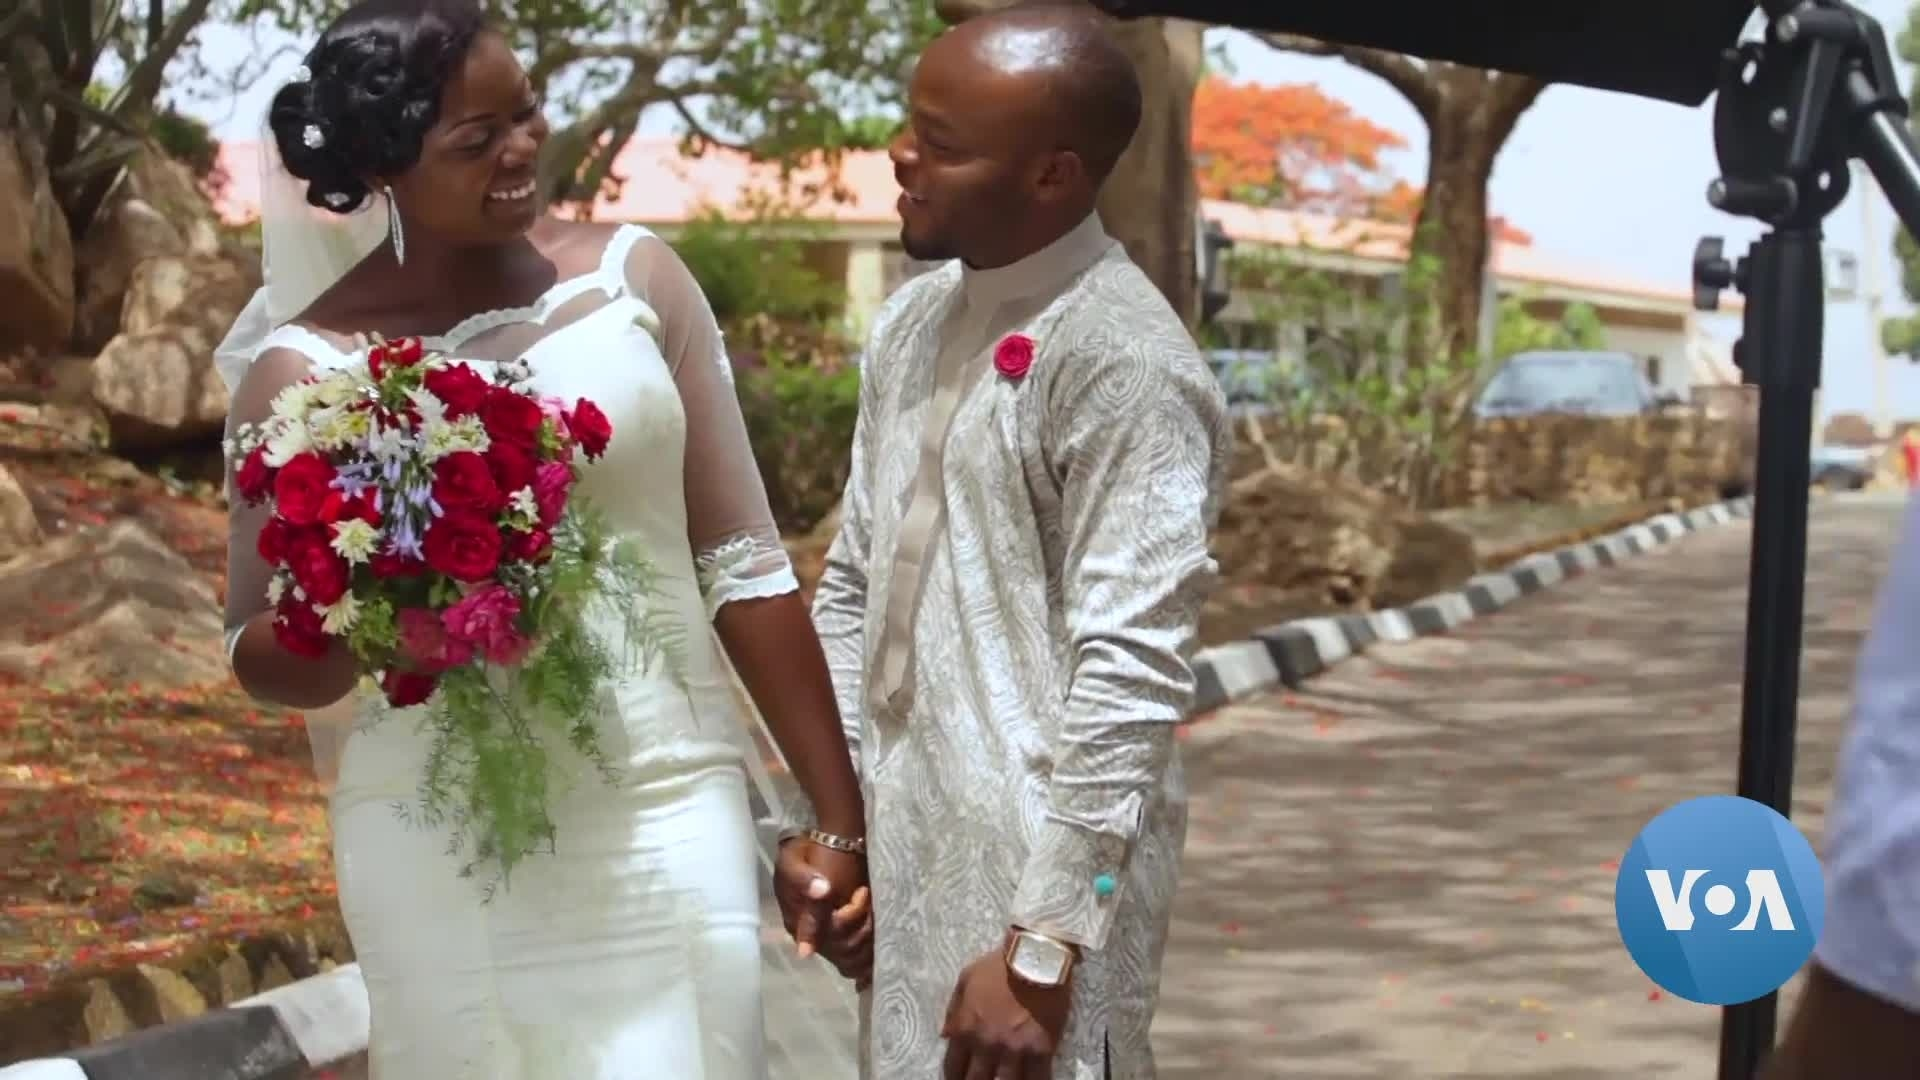 COVID Nigeria Wedding Business - WEB.mp4